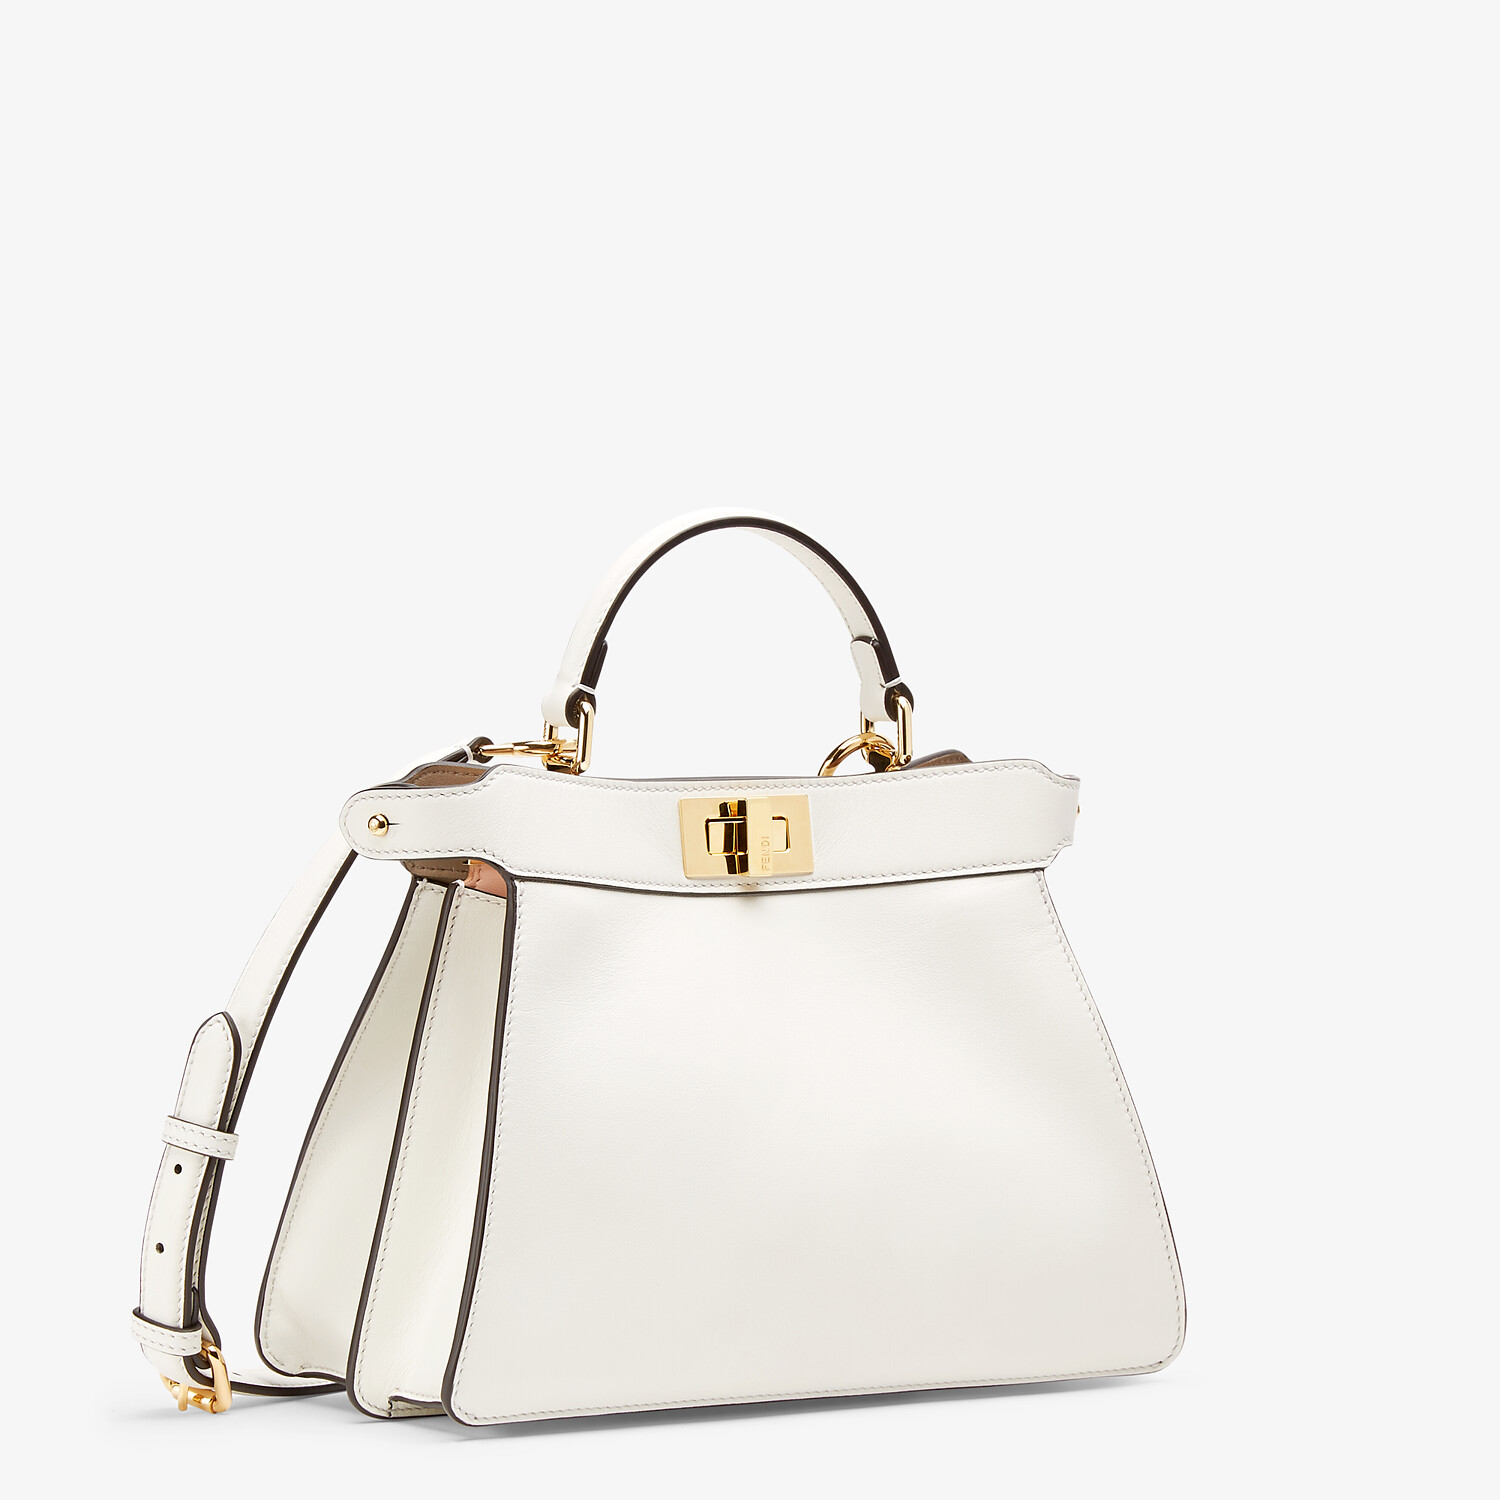 FENDI PEEKABOO ISEEU SMALL - White leather bag - view 3 detail